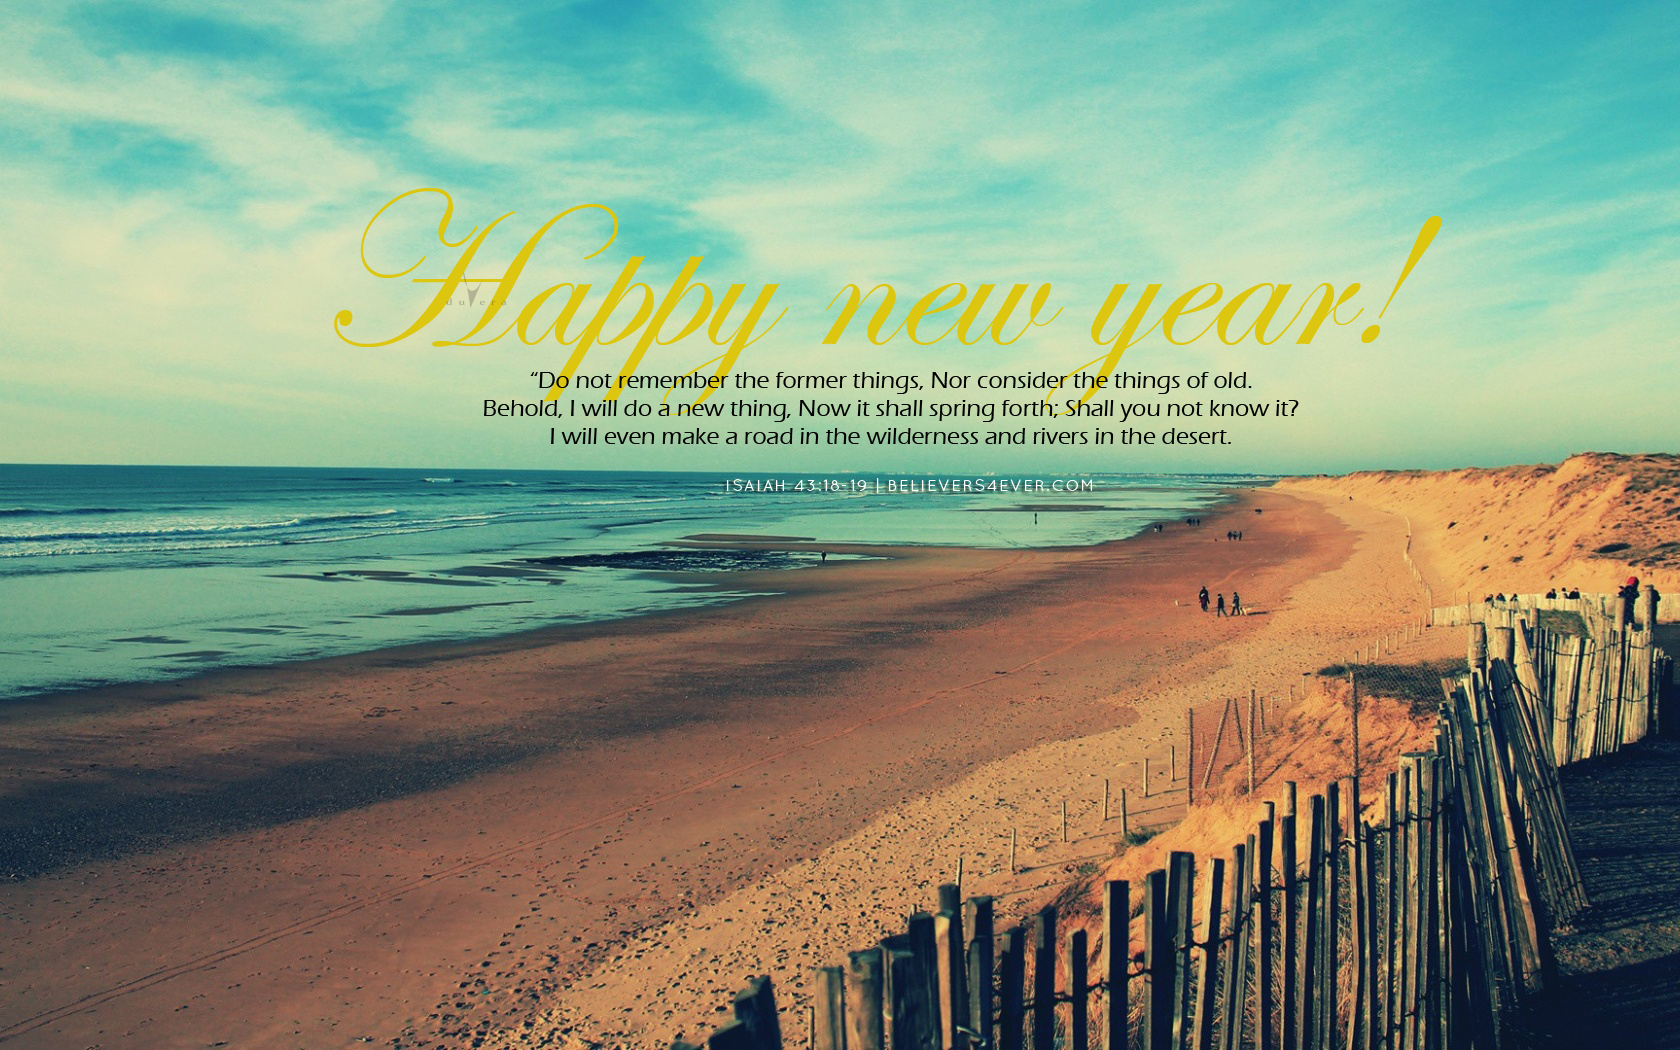 Former things new year 2015 Christian wallpaper